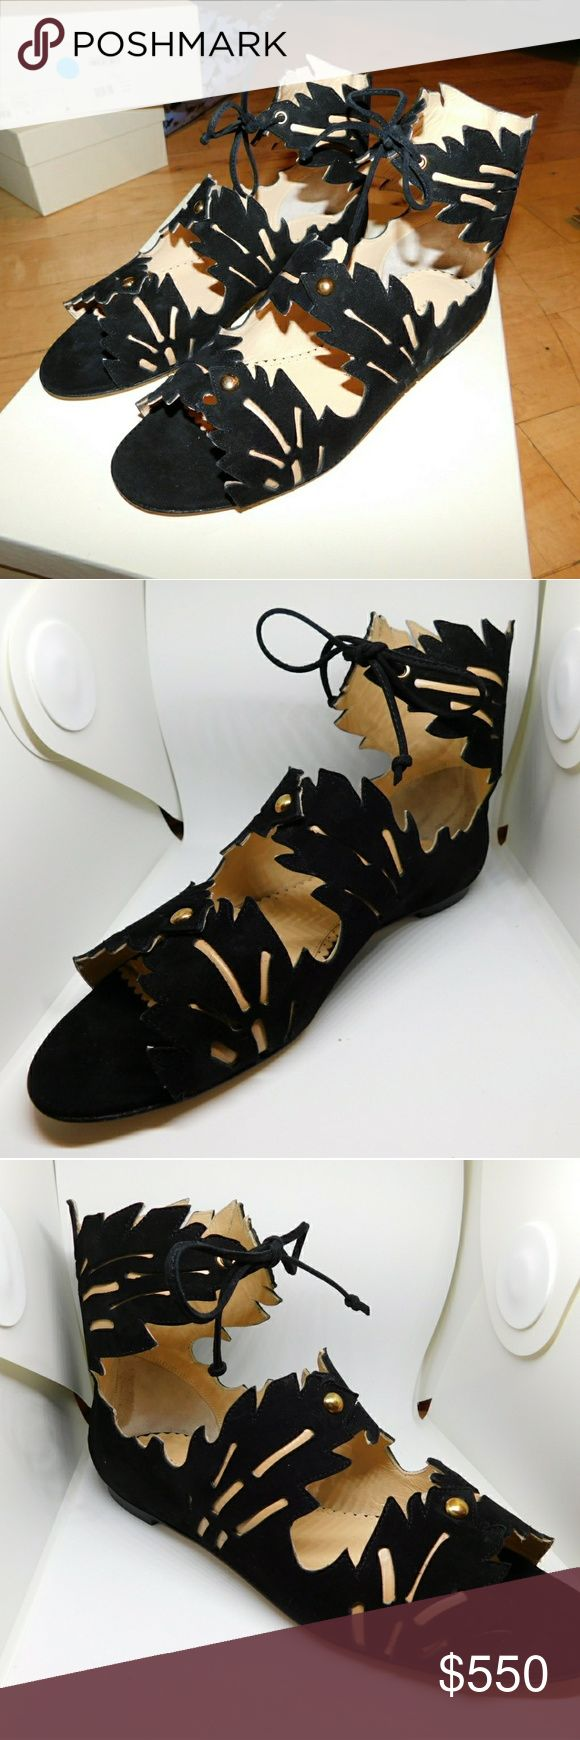 Charlotte Olympia Eden Cutout Suede Sandals EU 36.5 / US 6.5 - MSRP $975  Comes with the box (and 2 shoe bags) or I can ship without it for cheaper.  DETAILS  - Handmade in Italy  - Heel measures approximately 10mm/ 0.5 inch  - Black suede  - Leaf-inspired cutouts, sand leather lining and insole, gold-tone push stud detail, open round toe, signature gold web plaque at sole  - Ankle ties  - Come with an adhesive Polaroid picture which is placed on the outside of your shoe box Charlotte…